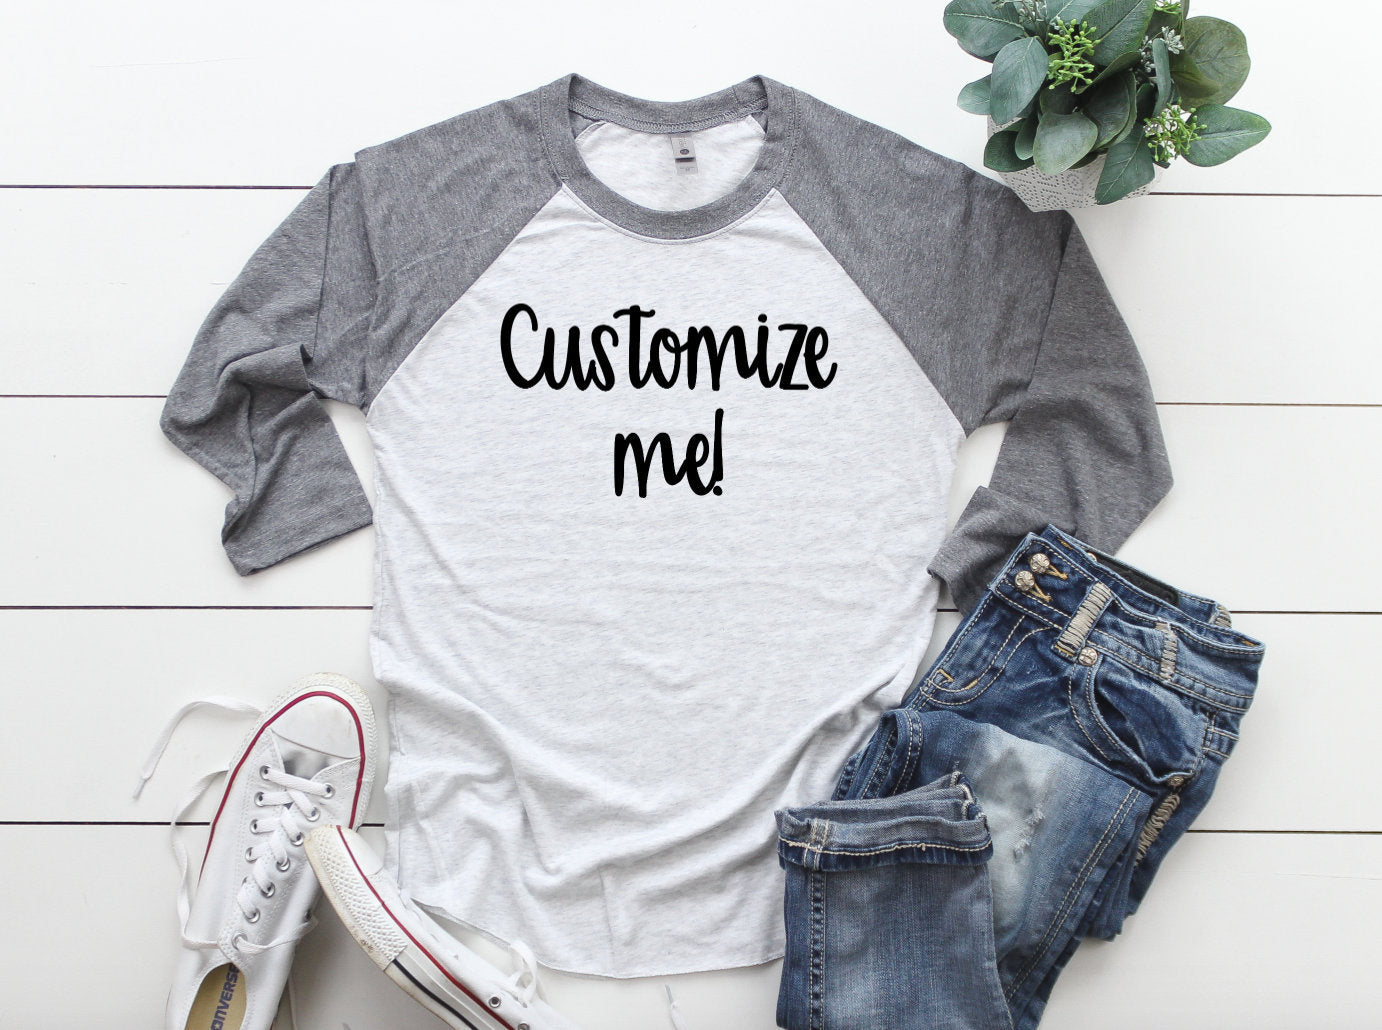 Custom 3/4 Sleeve T-shirt - Customized Shirt - Custom Raglans - Custom Grey Shirts - Custom Grey Raglans - Women's - Men's - Unisex - Adult